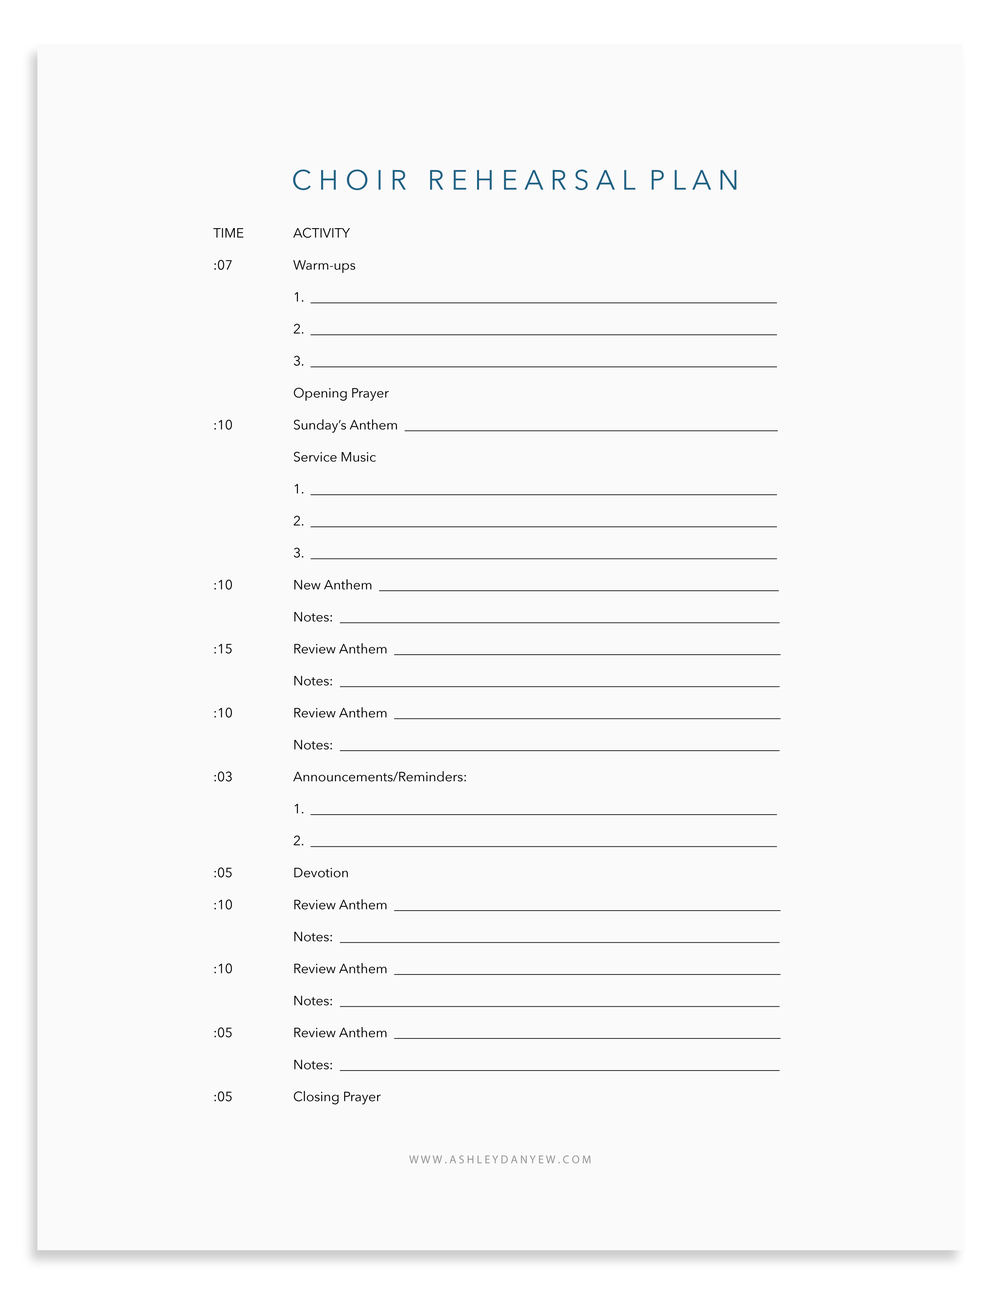 Choir Rehearsal Plan Template.png